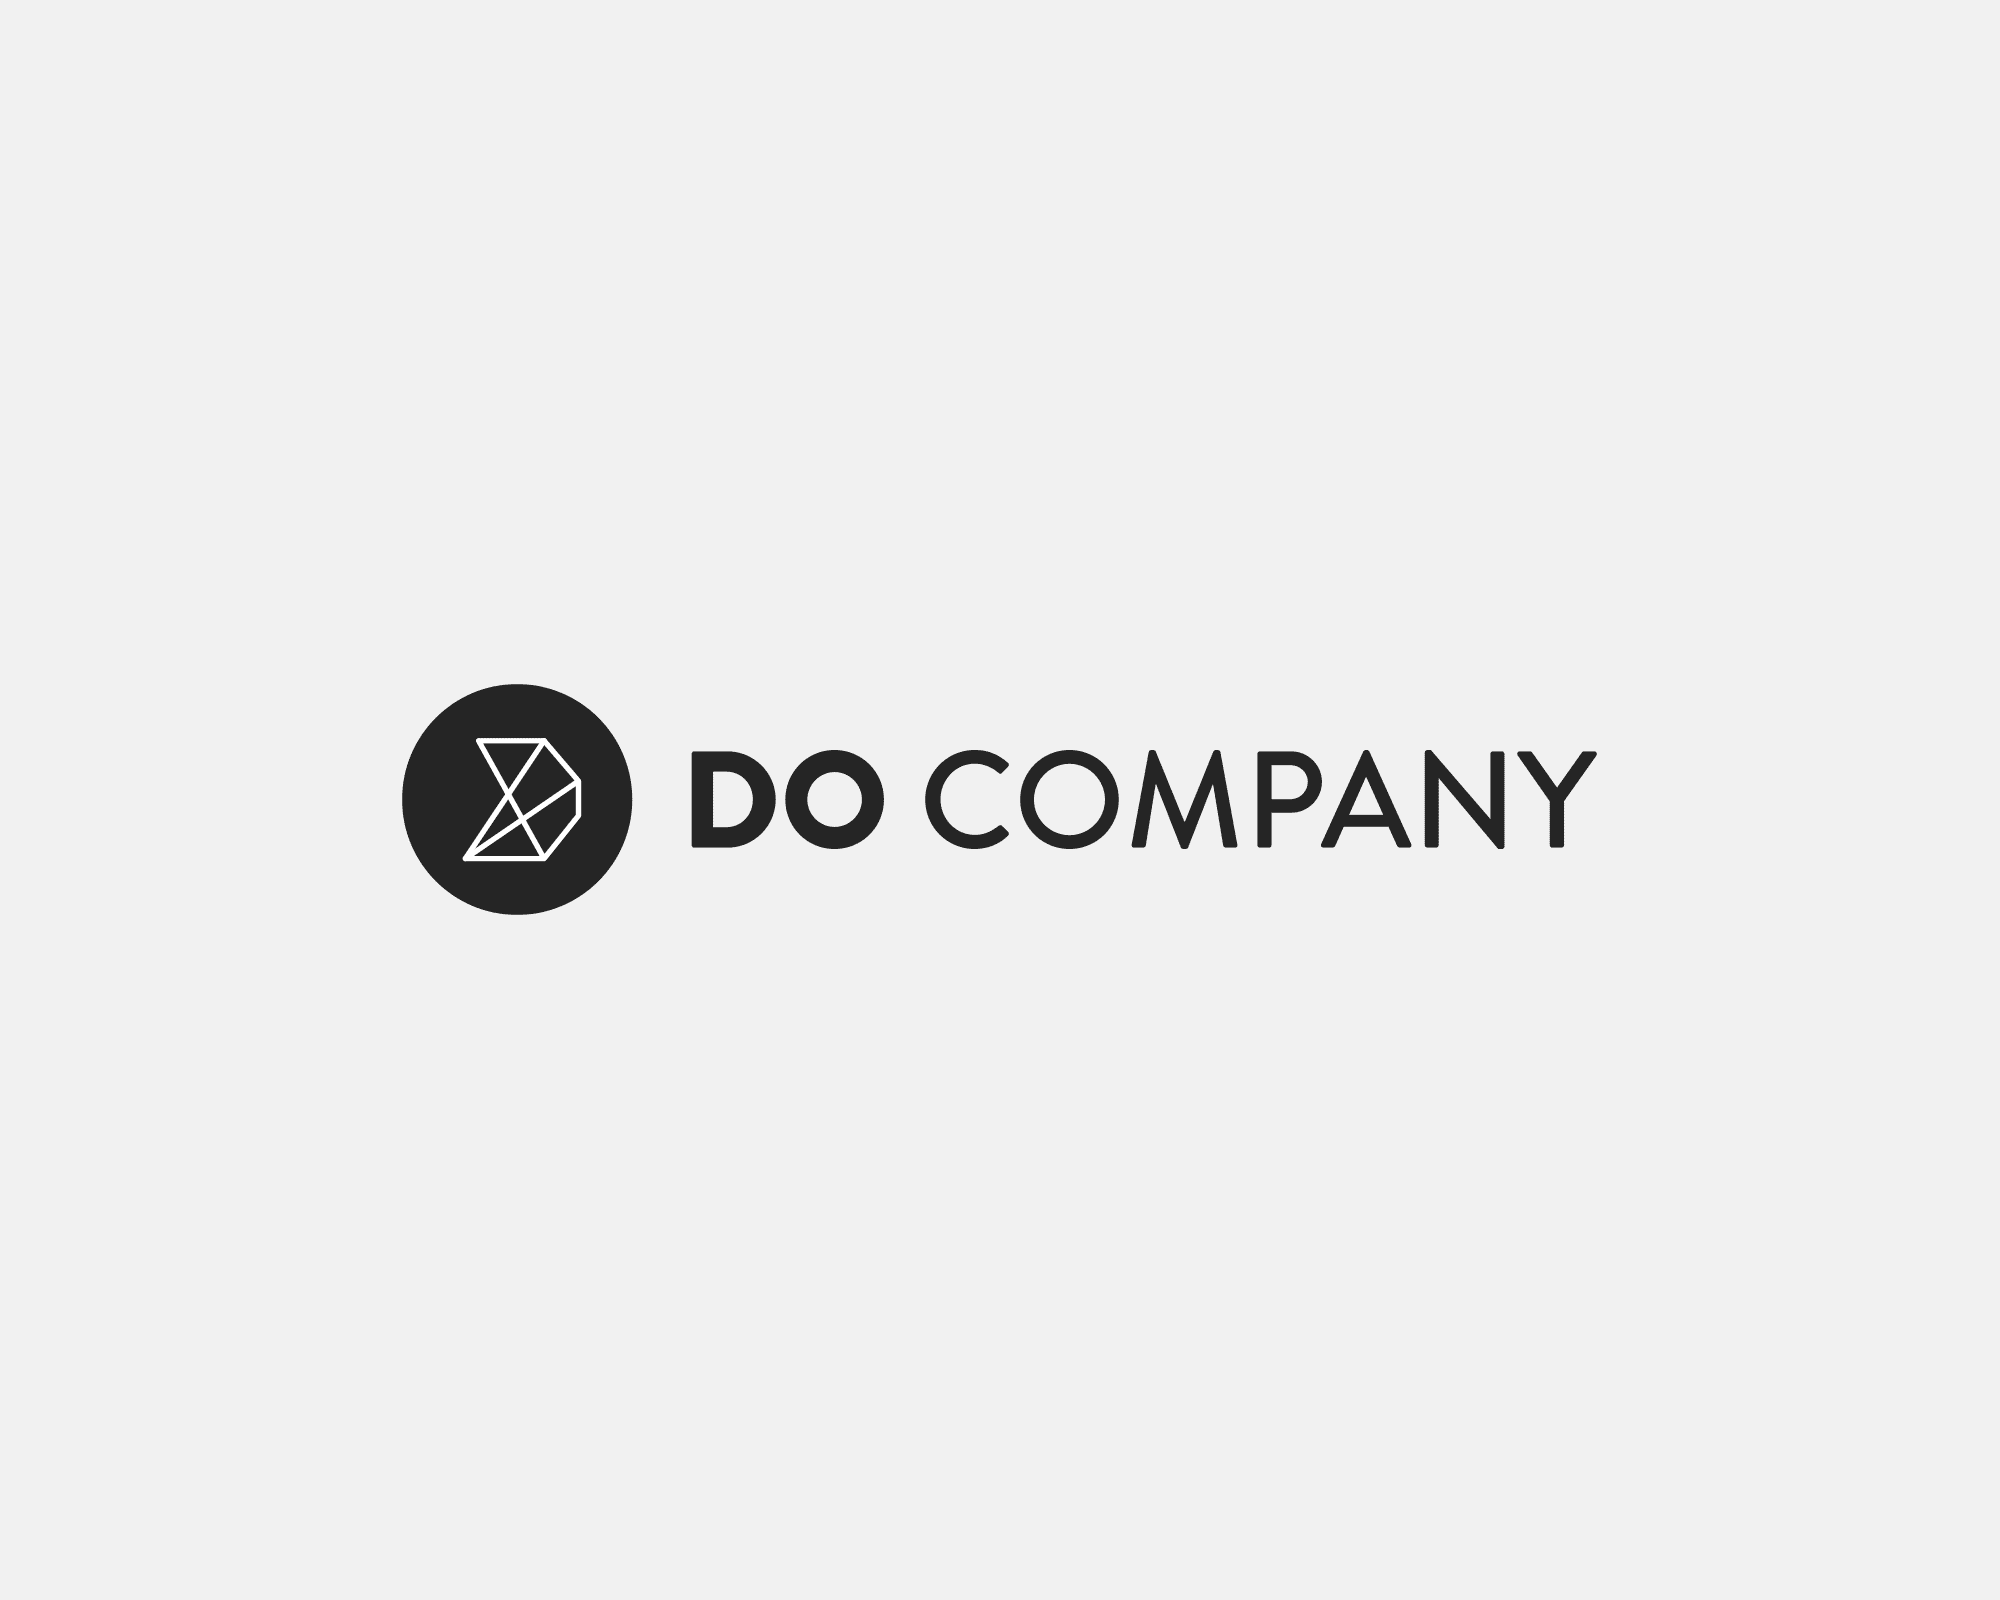 Do Company featured image